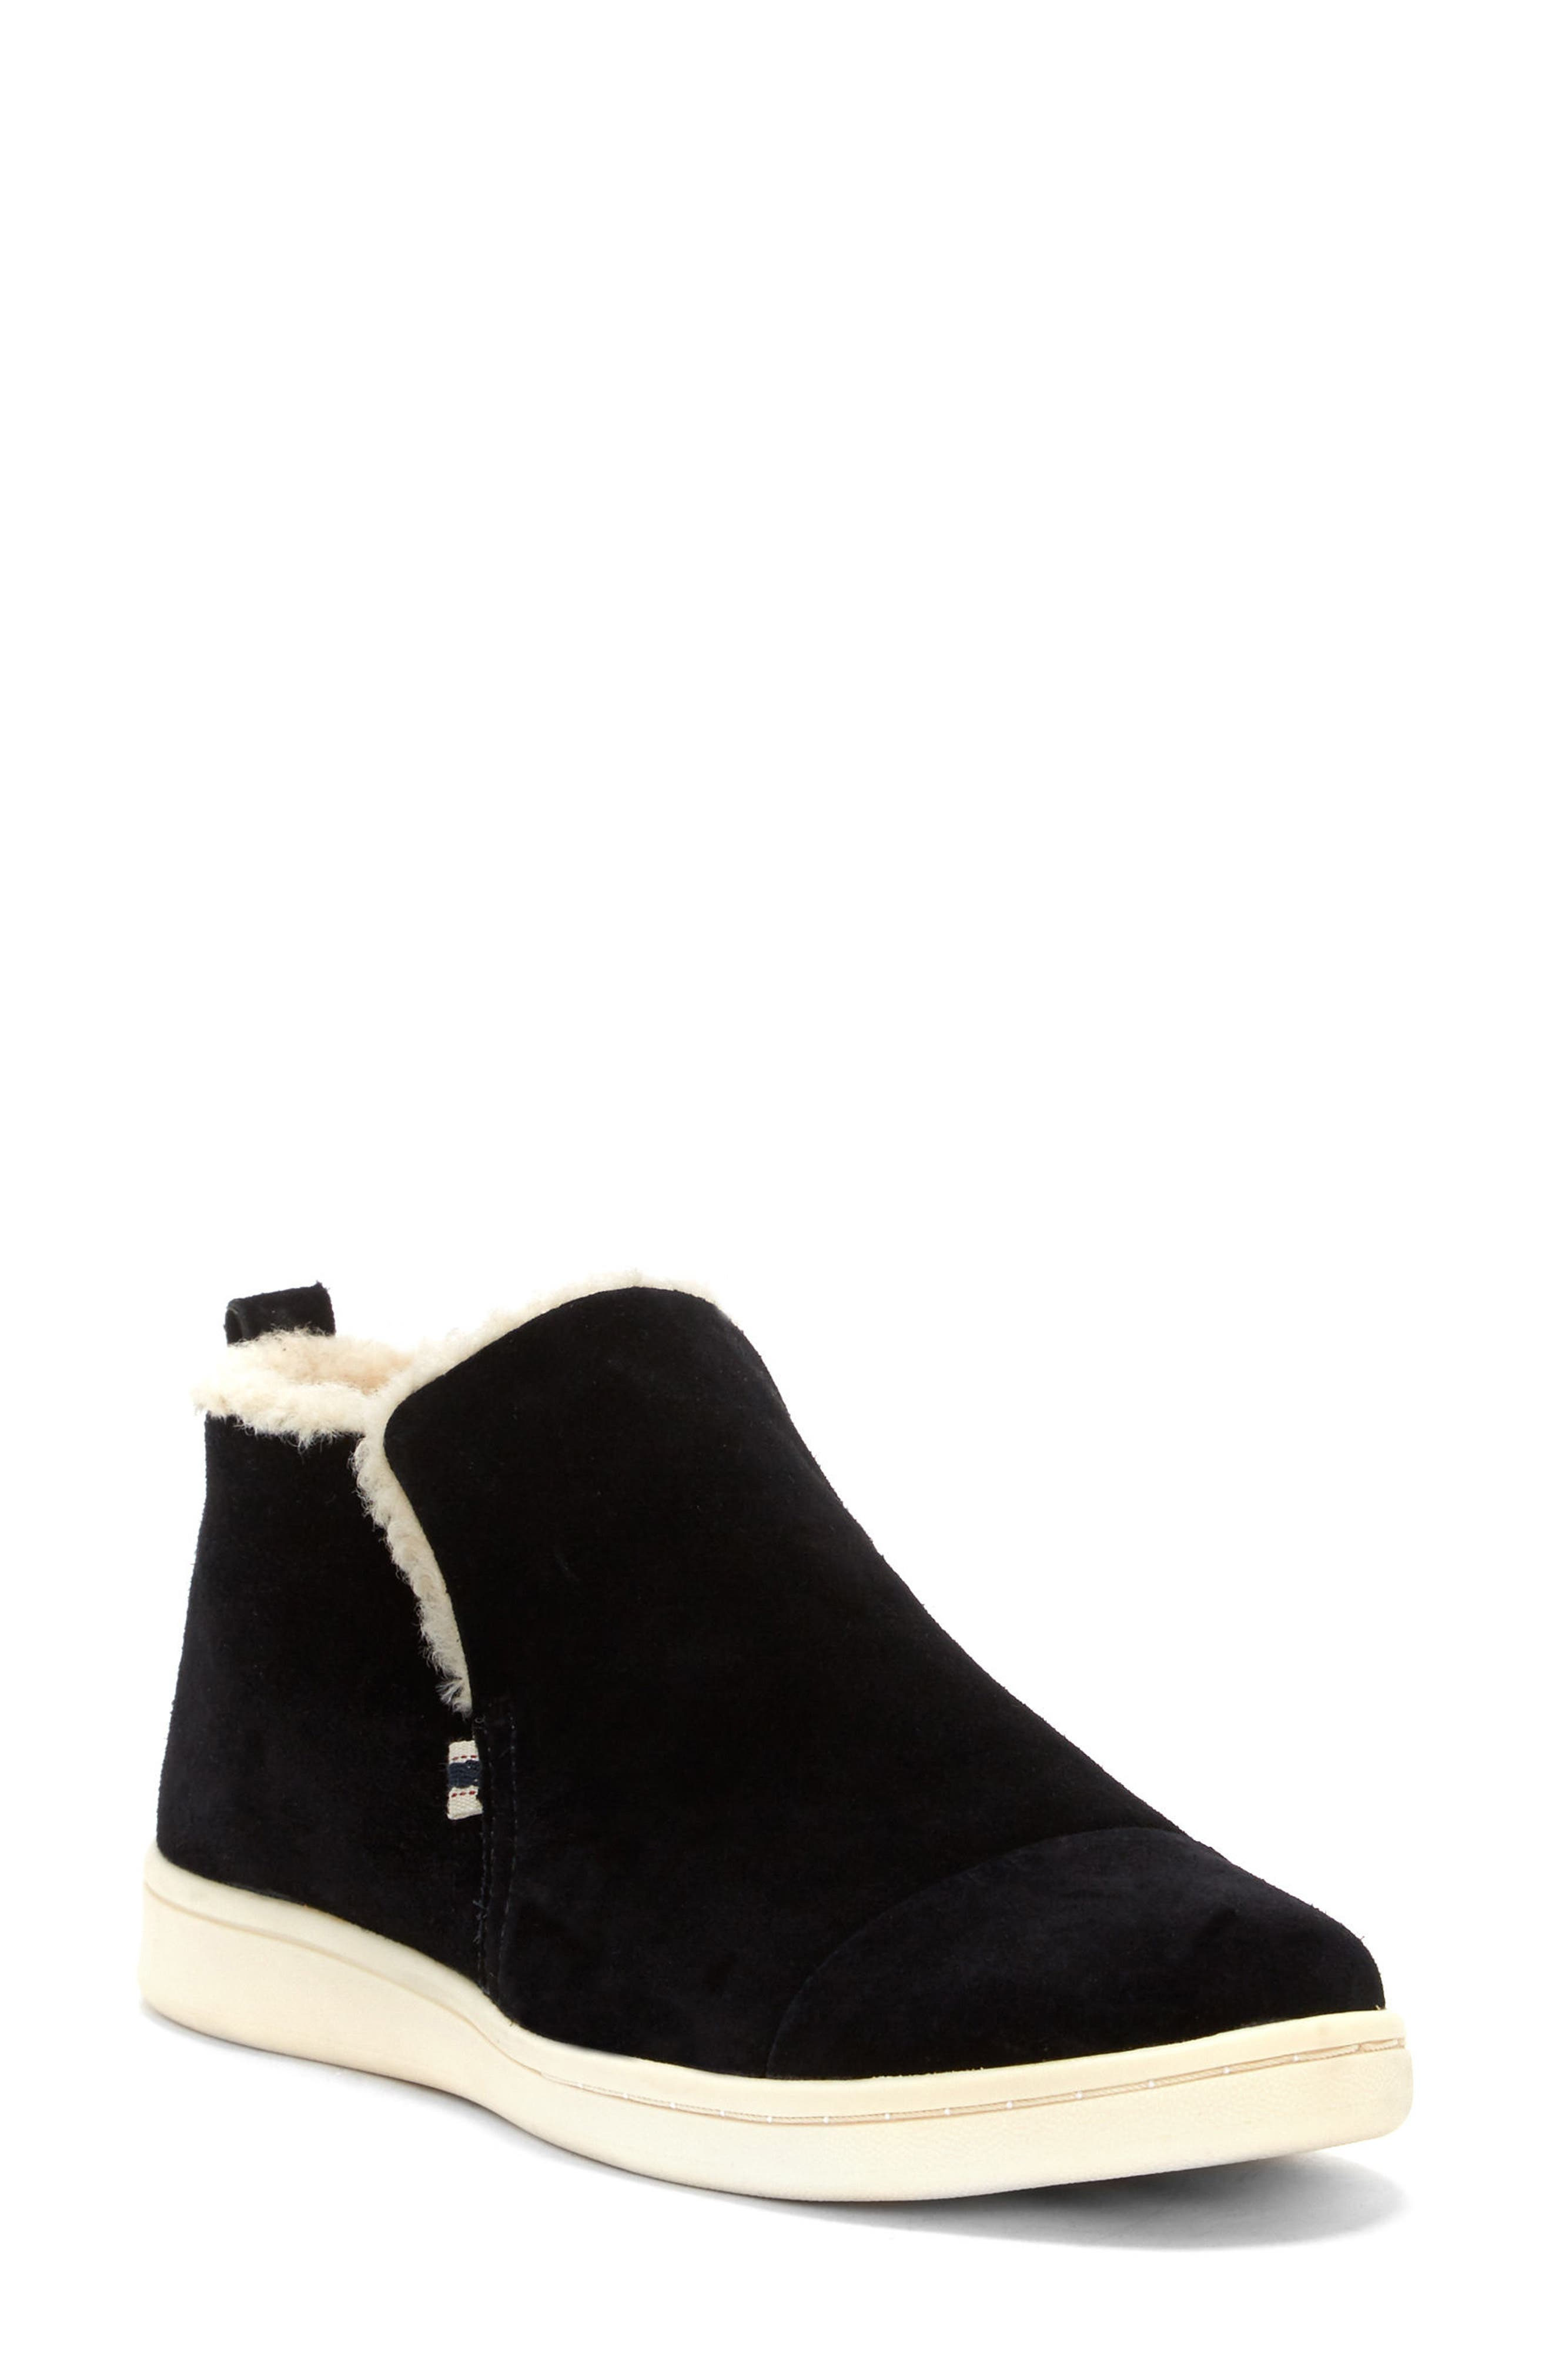 Cambon Faux-Shearling Lined Bootie,                             Main thumbnail 1, color,                             002